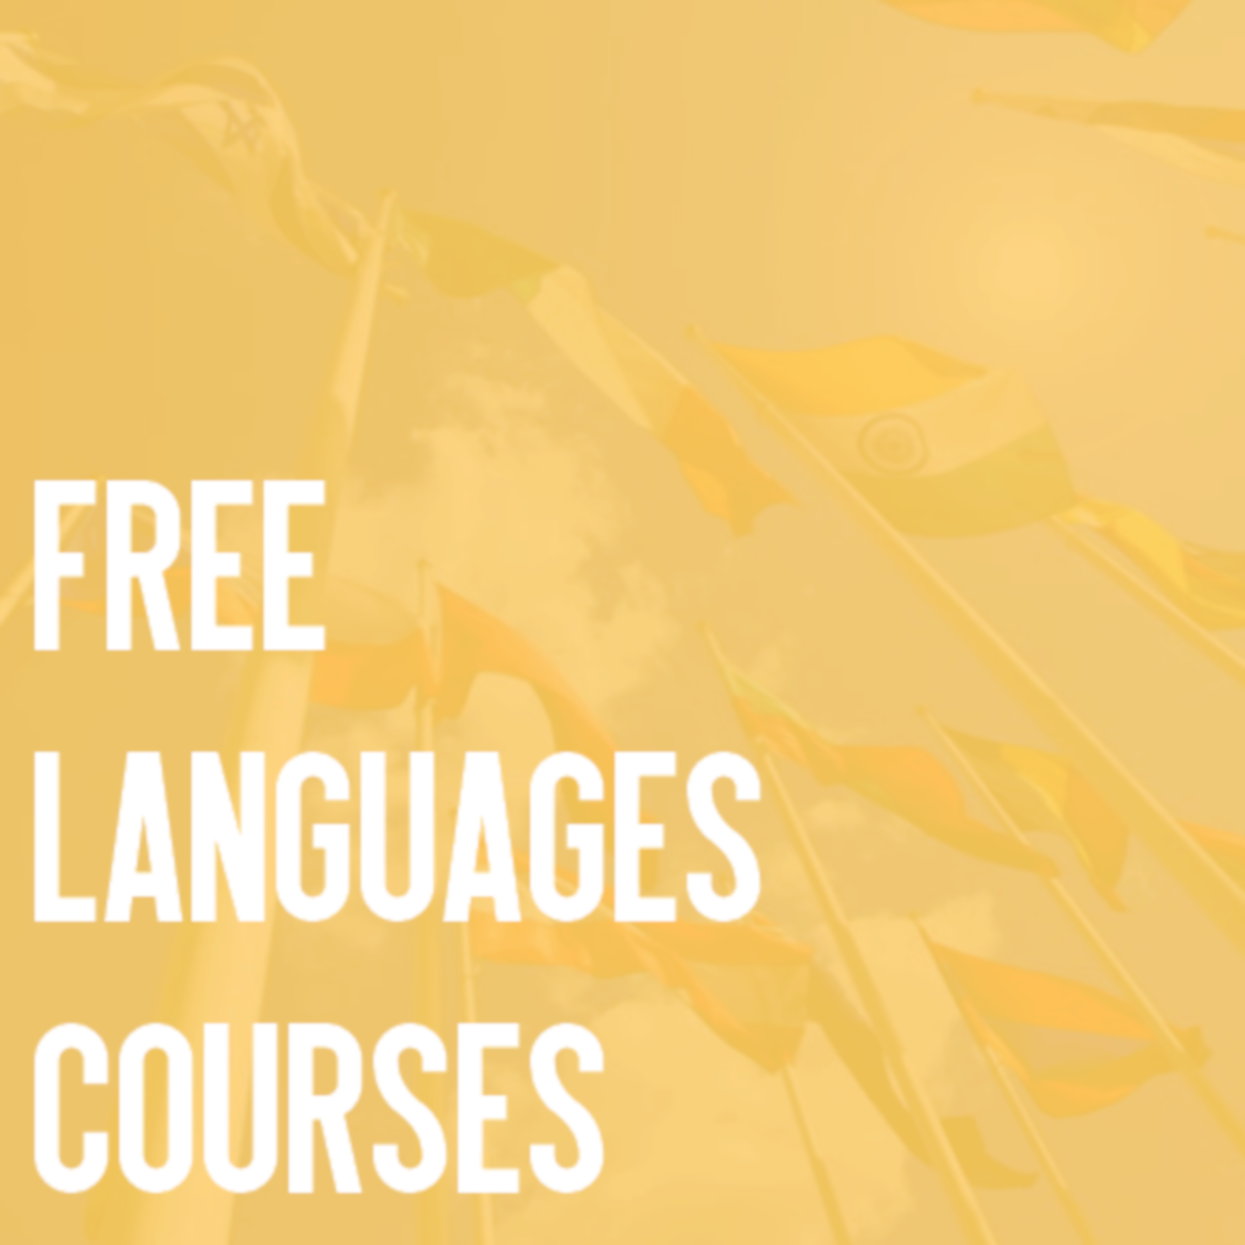 free languages courses yello.png